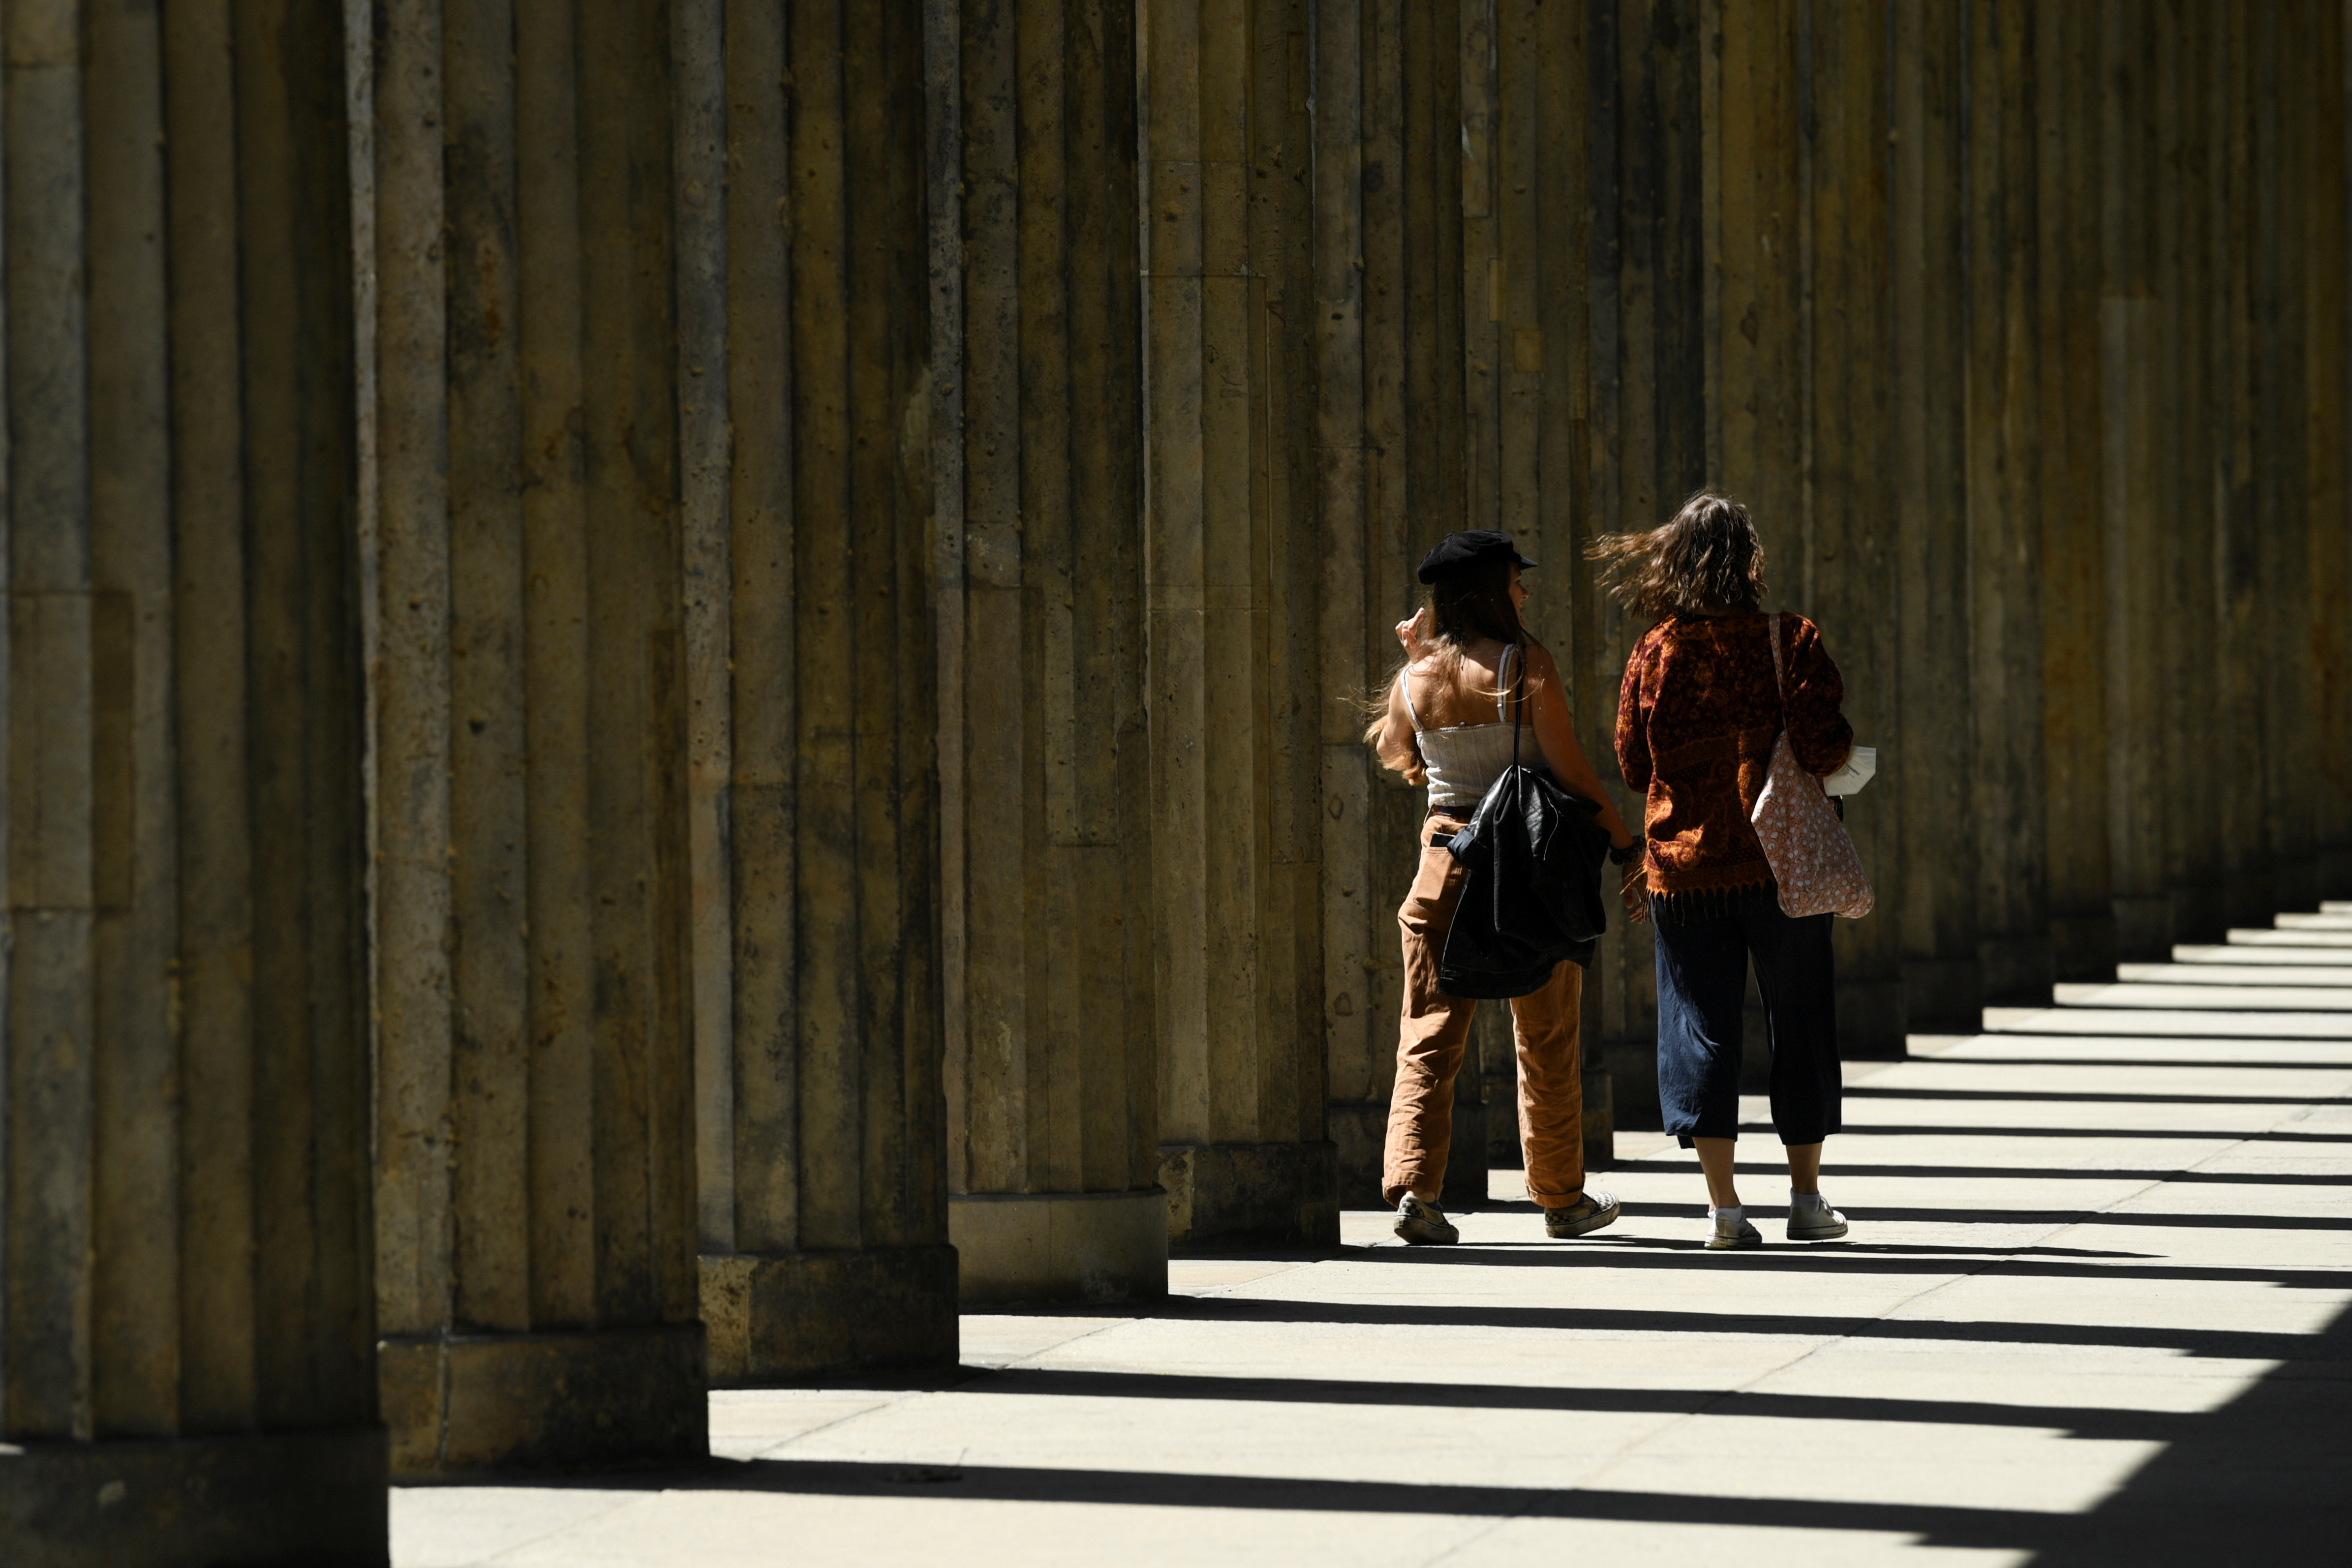 People walk past a colonnade on Museum Island during warm temperatures, amid the coronavirus disease (COVID-19) pandemic, in Berlin, Germany May 30, 2021.  REUTERS/Annegret Hilse